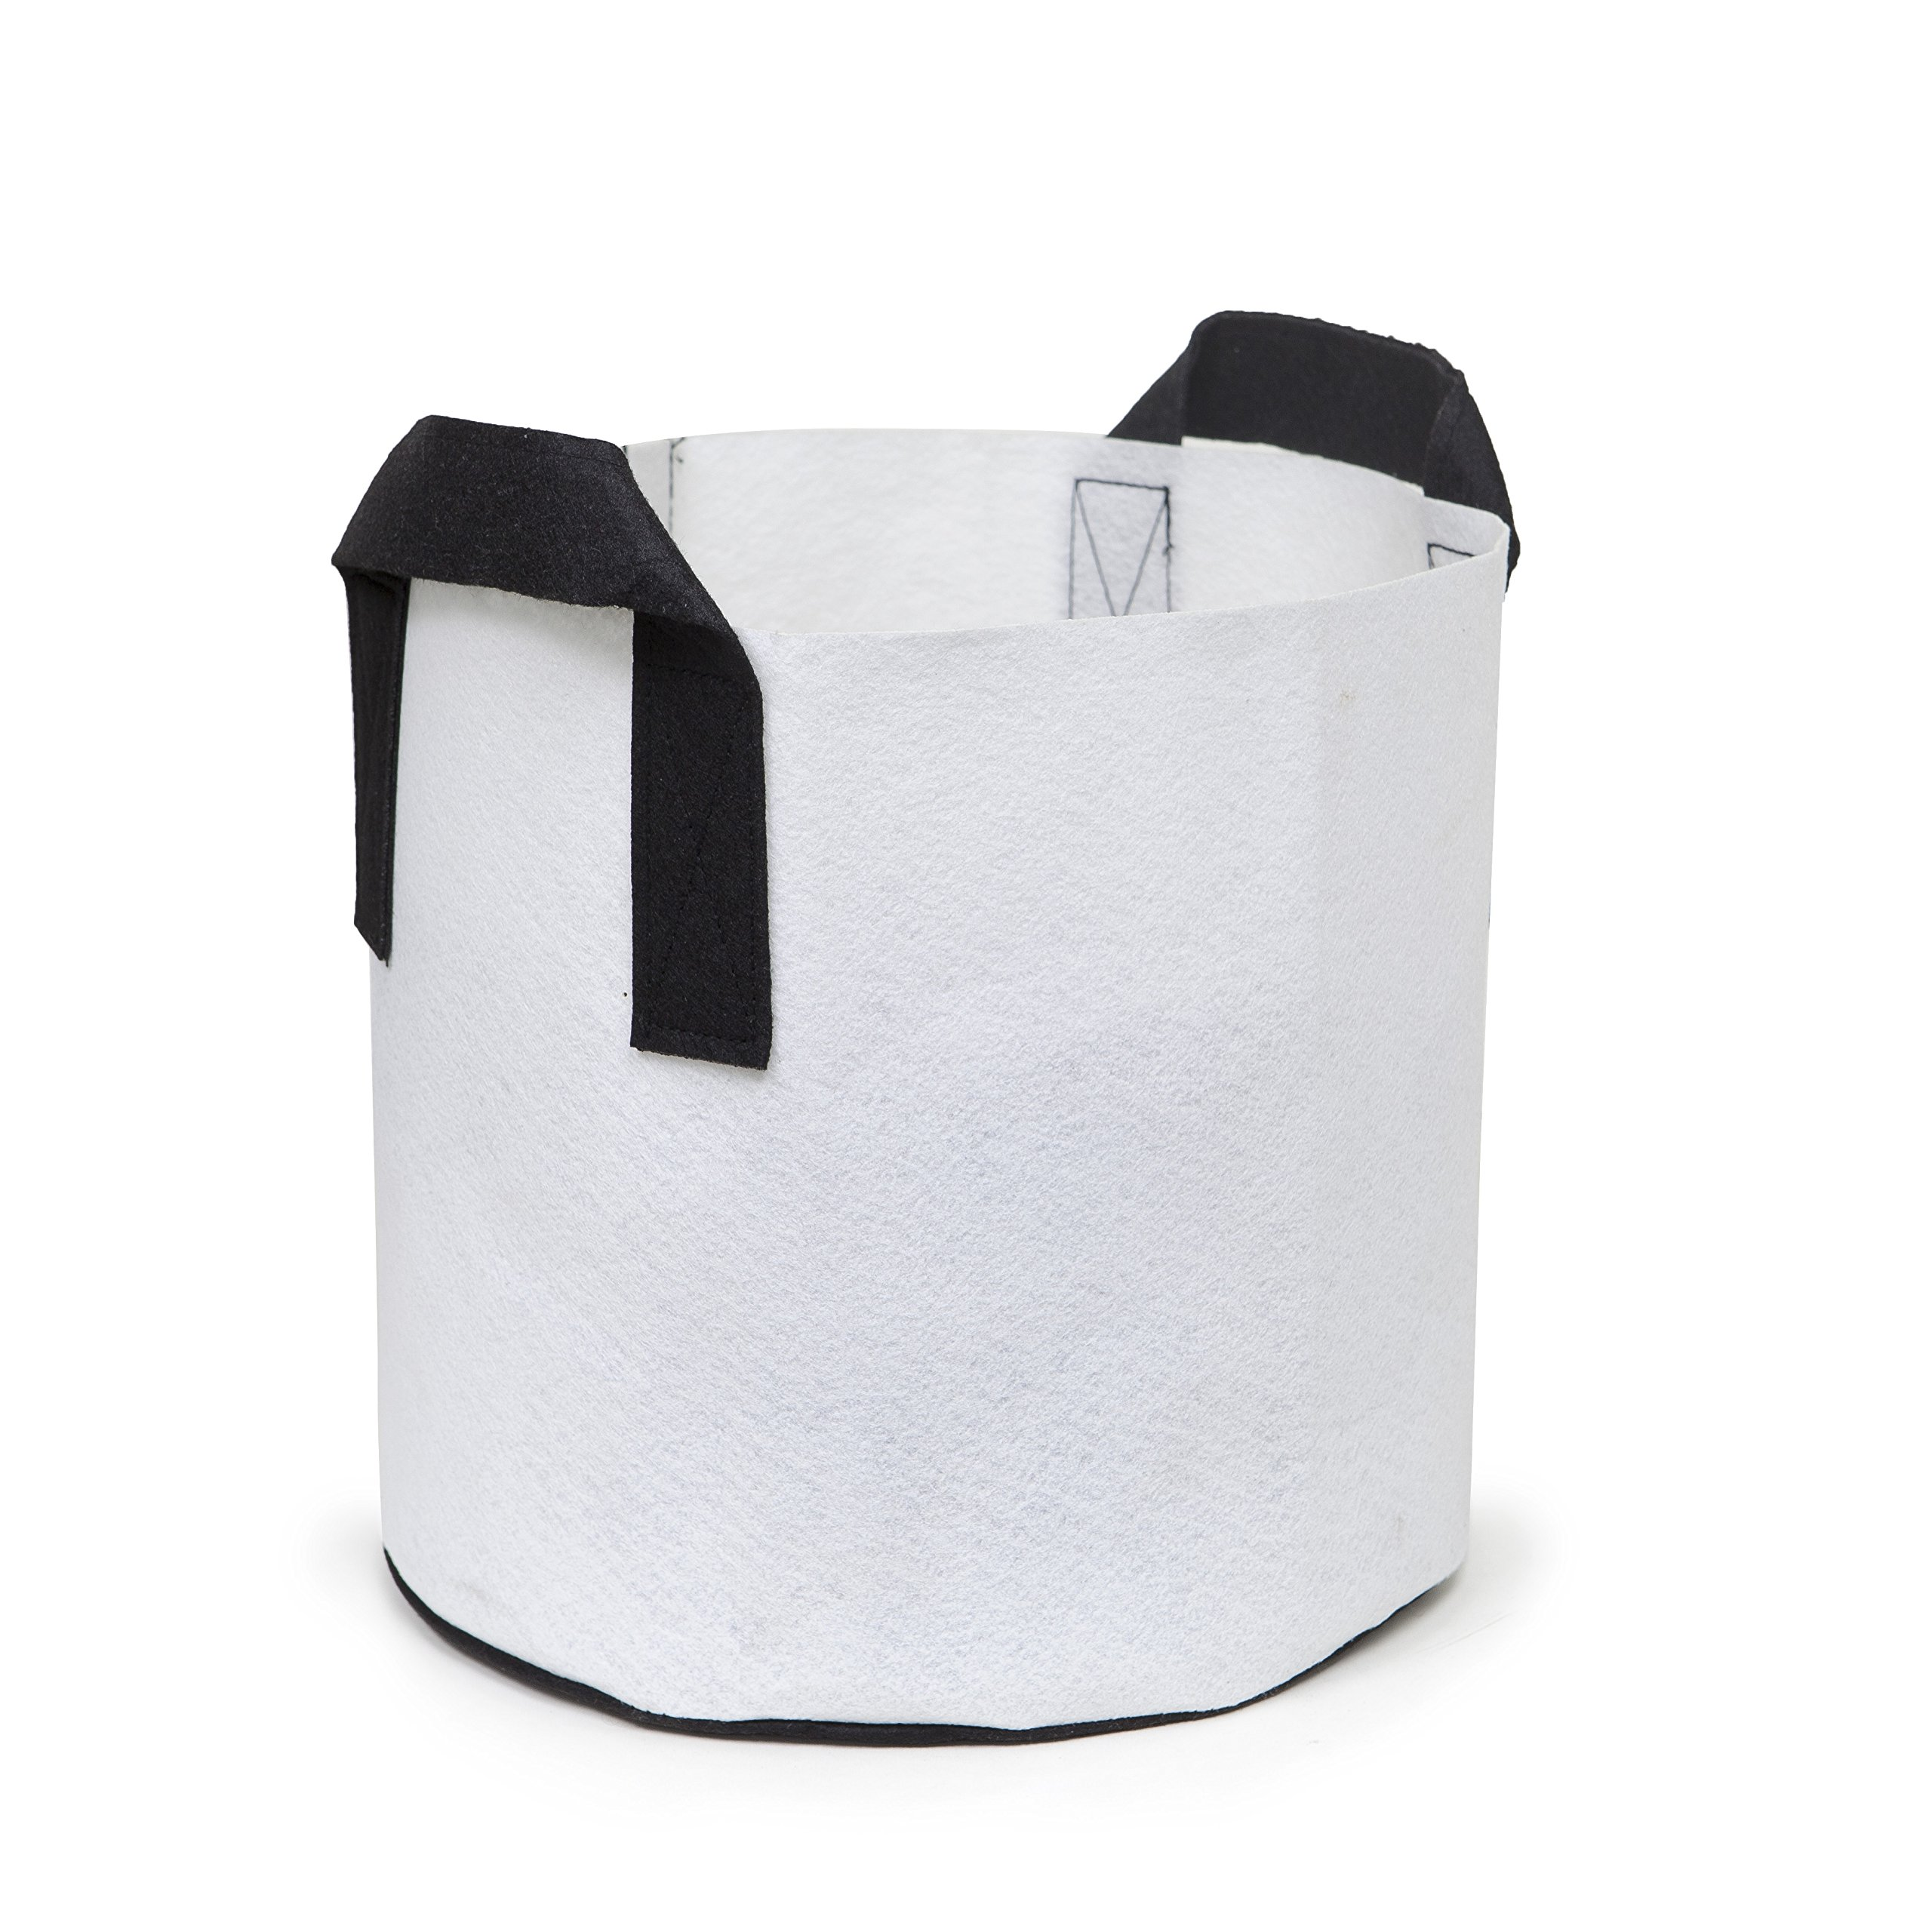 247Garden 6-Pack 7 Gallon Grow Bags/Aeration Fabric Pots w/Handles (White) by 247Garden (Image #4)